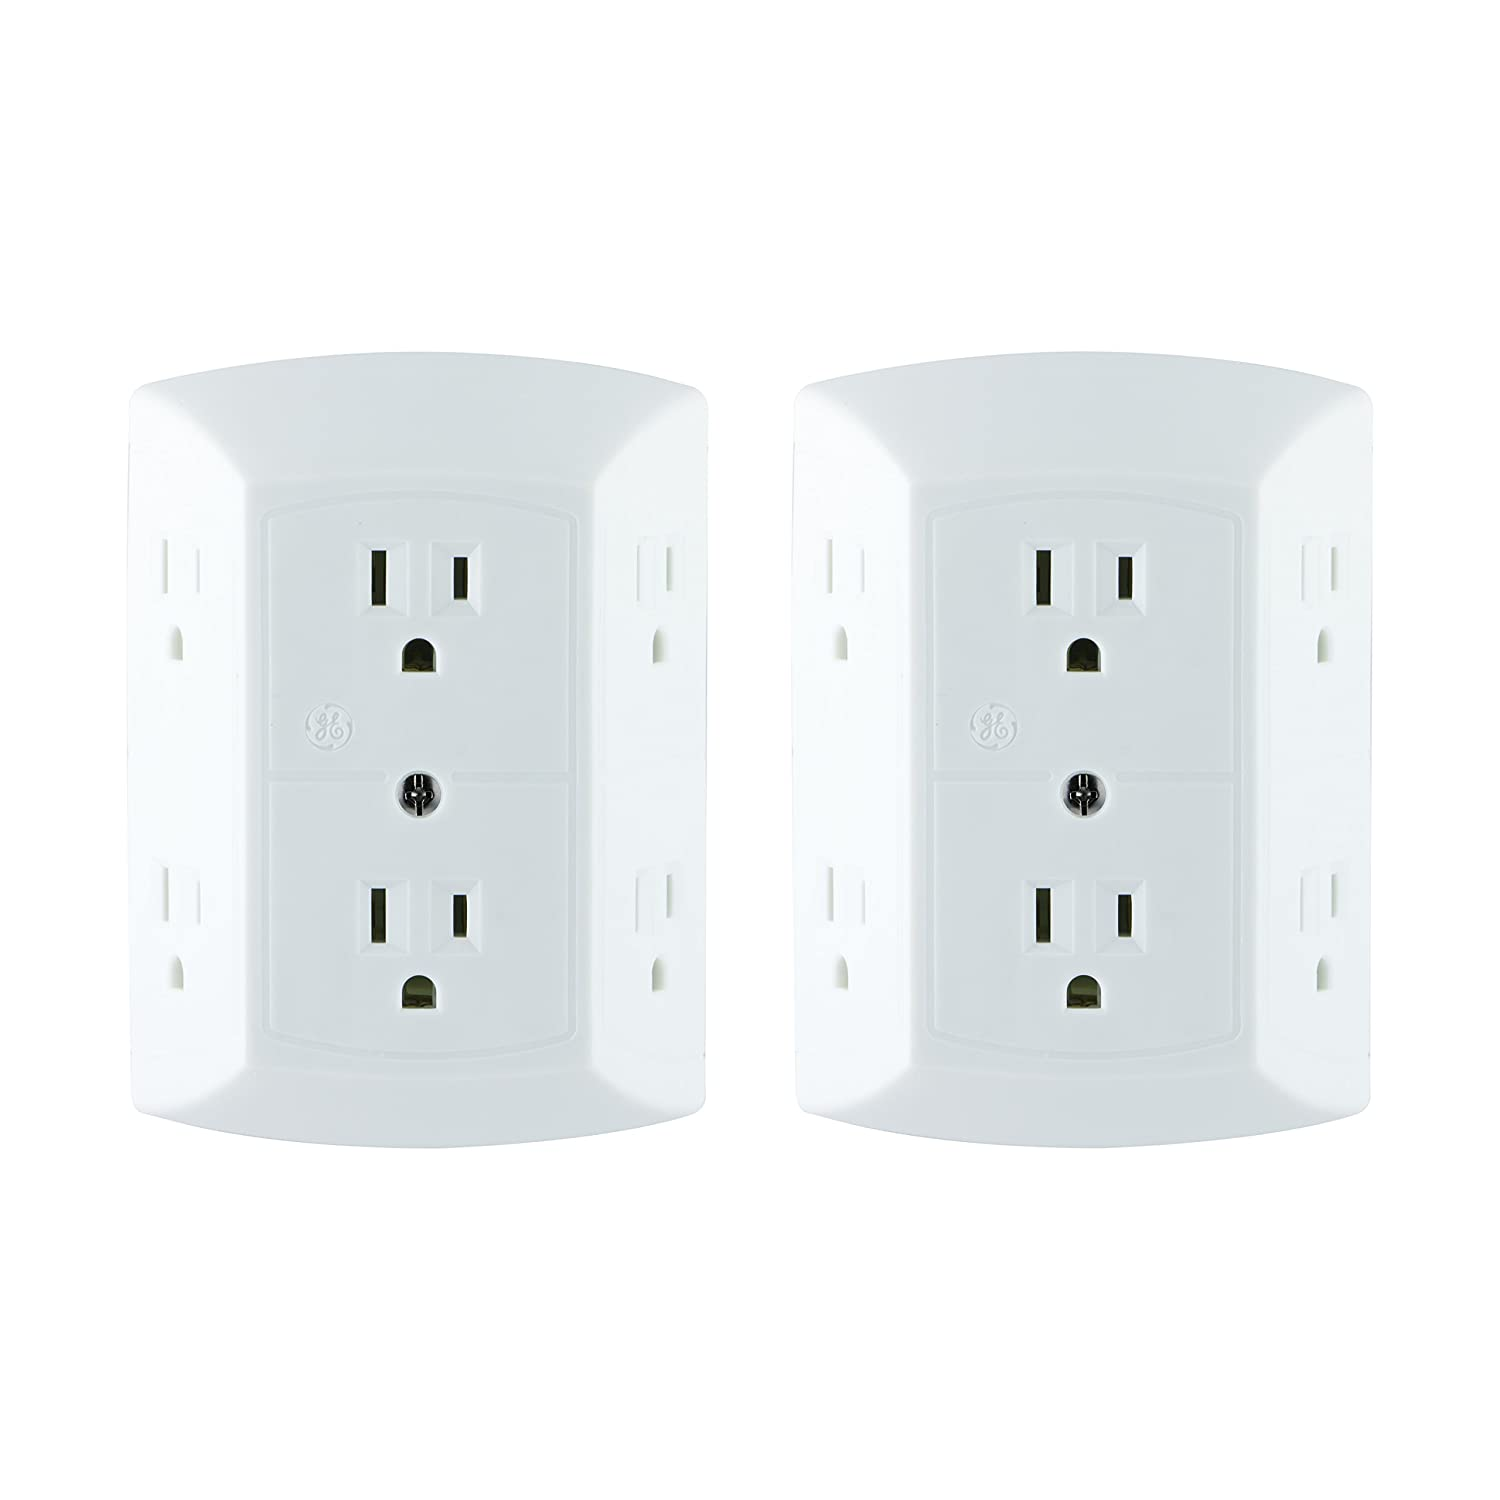 GE Office, Home Theater, Kitchen, or Bathroom, 6 Plug Strip 2 Pack, Extra Wide Spaced Cell Phone, Power Adapter, 3 Prong, Multi Outlet Wall Charger, Quick & Easy Install, UL Listed, White, 40222